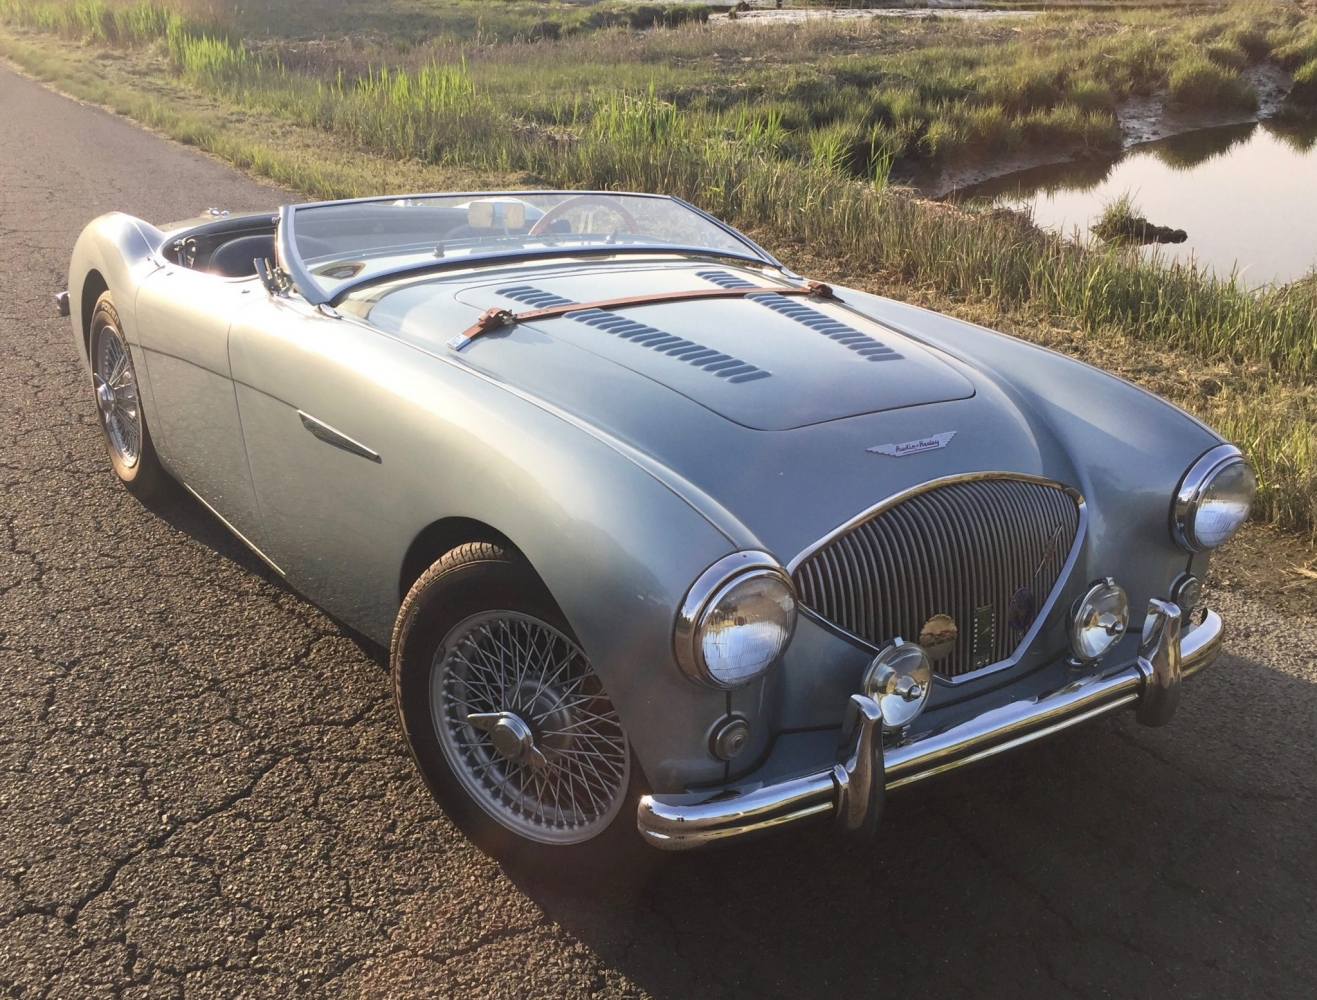 1956 Austin Healey Lemans spec 100 BN2 for sale